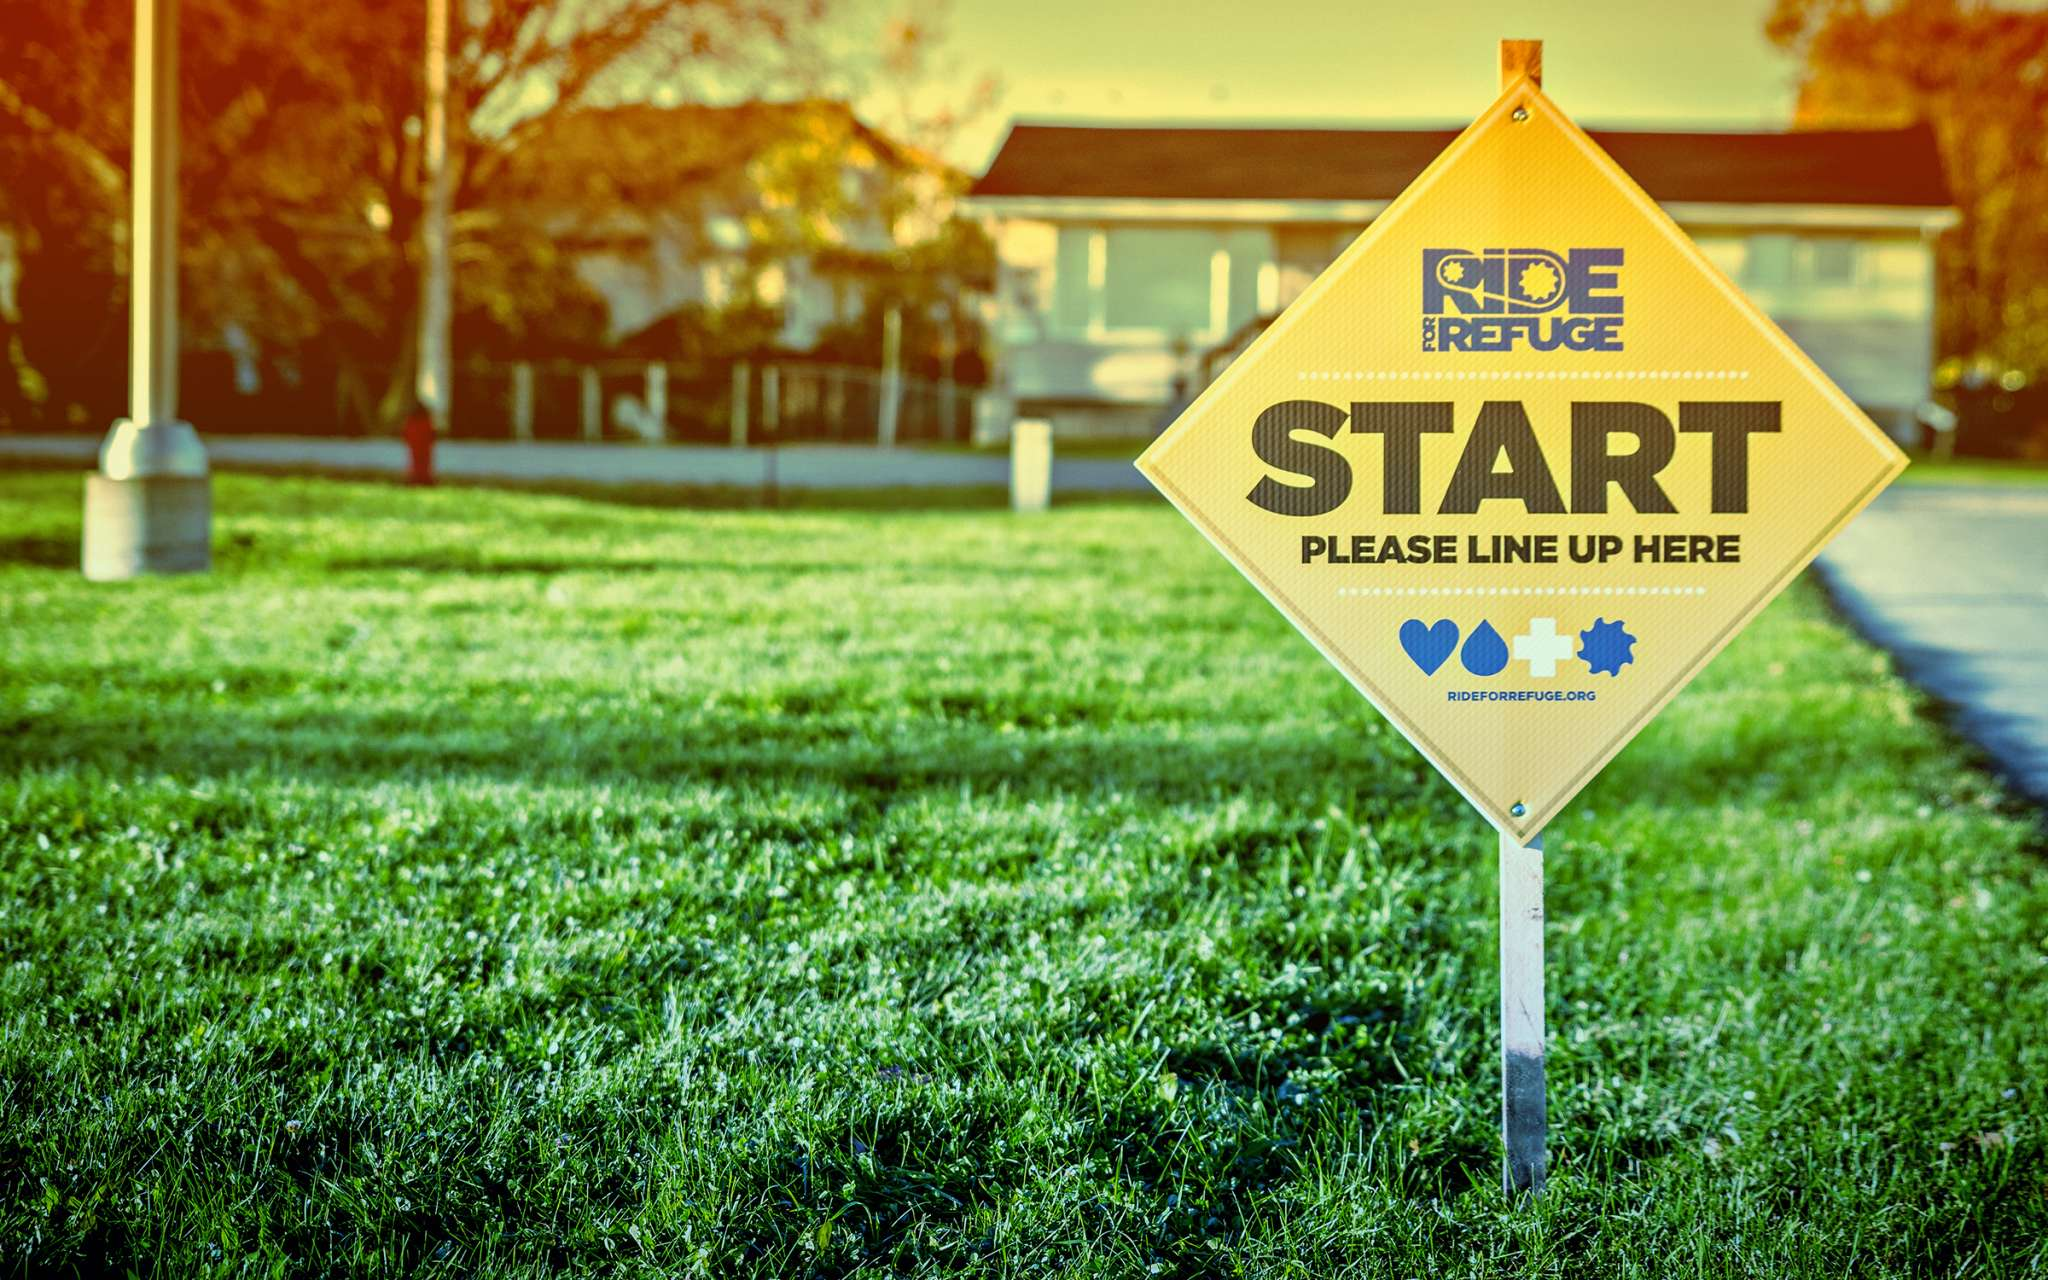 Start sign on lawn promoting the Ride For Refuge start line.